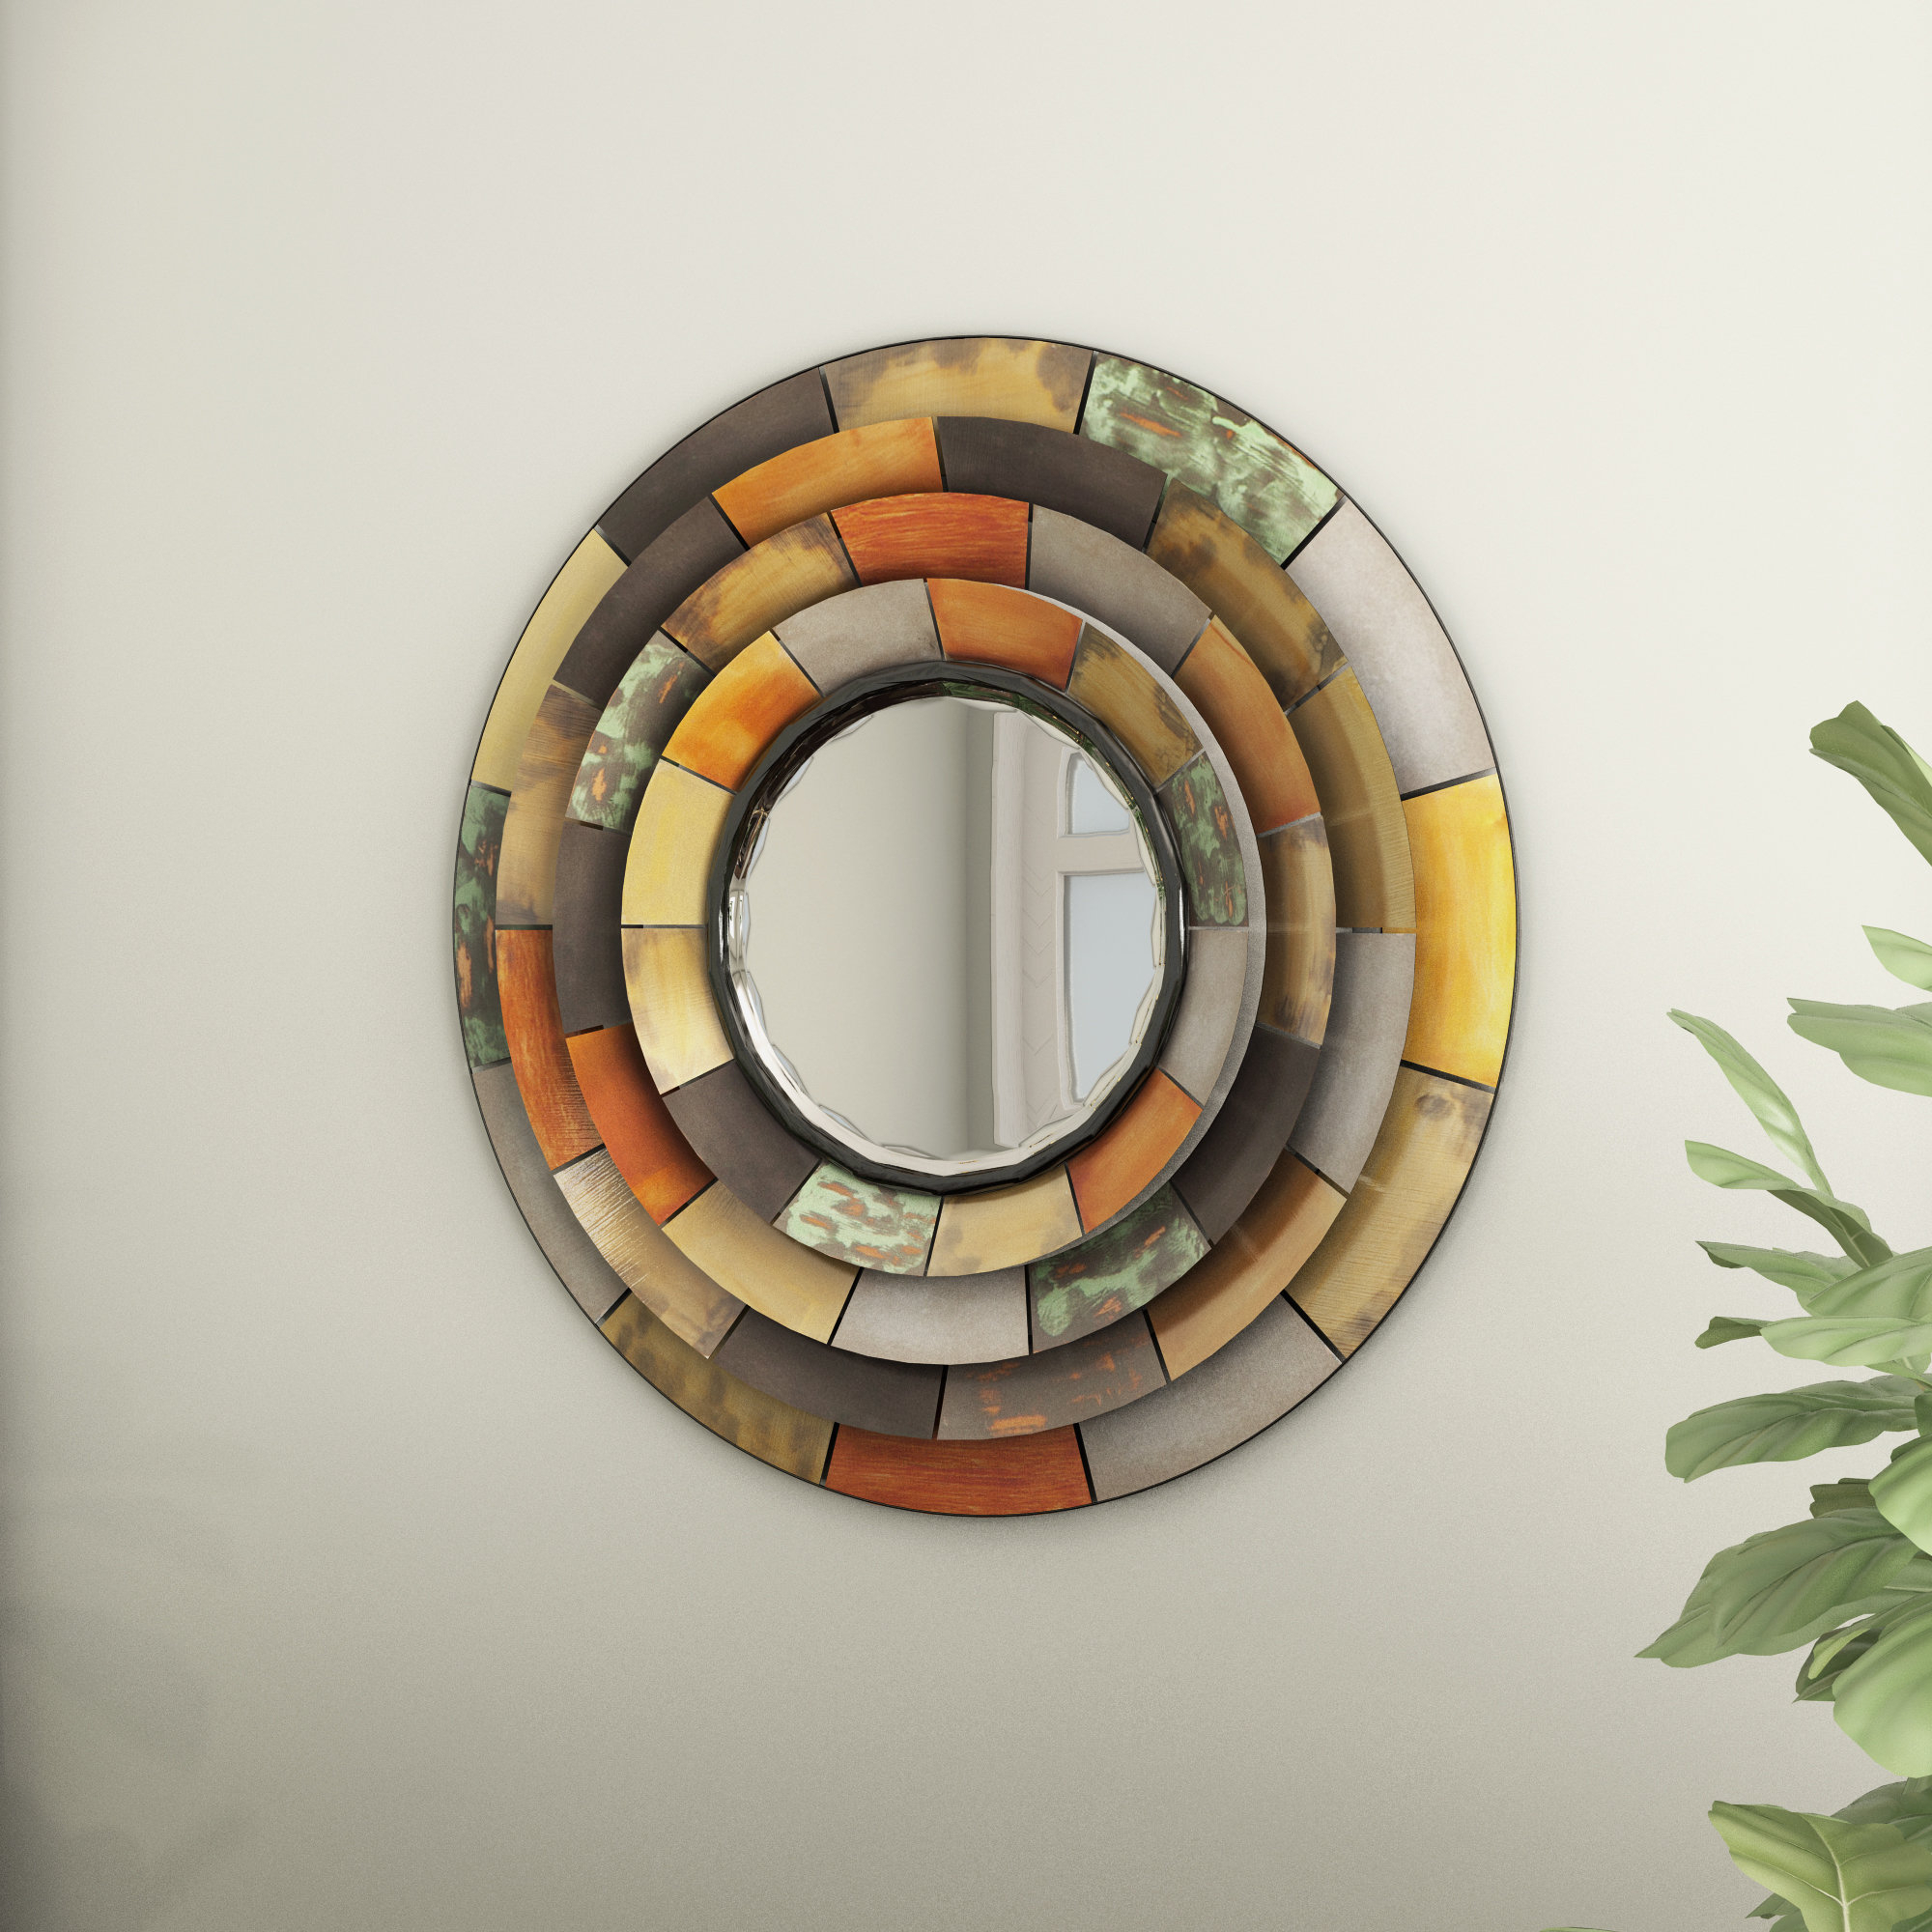 Preferred Round Galvanized Metallic Wall Mirror Intended For Hussain Tile Accent Wall Mirrors (View 13 of 20)